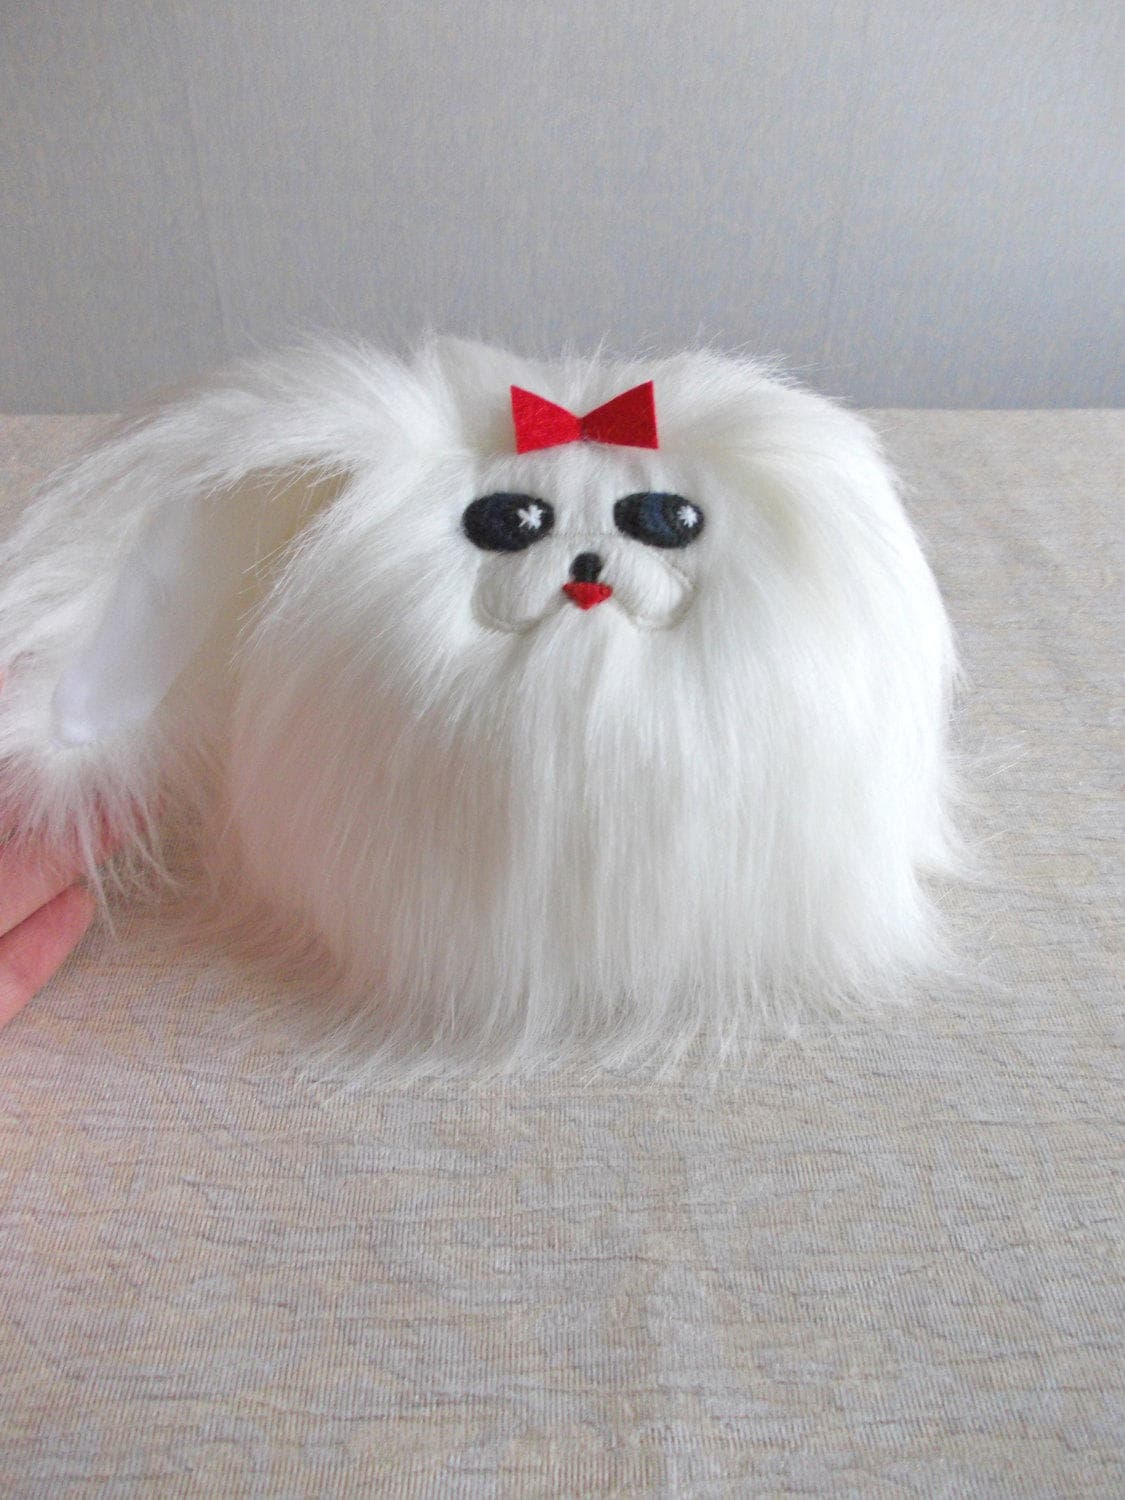 White Pekingese Dog Toy Shih Tzu Dog Toy Maltese Dog Toy Etsy